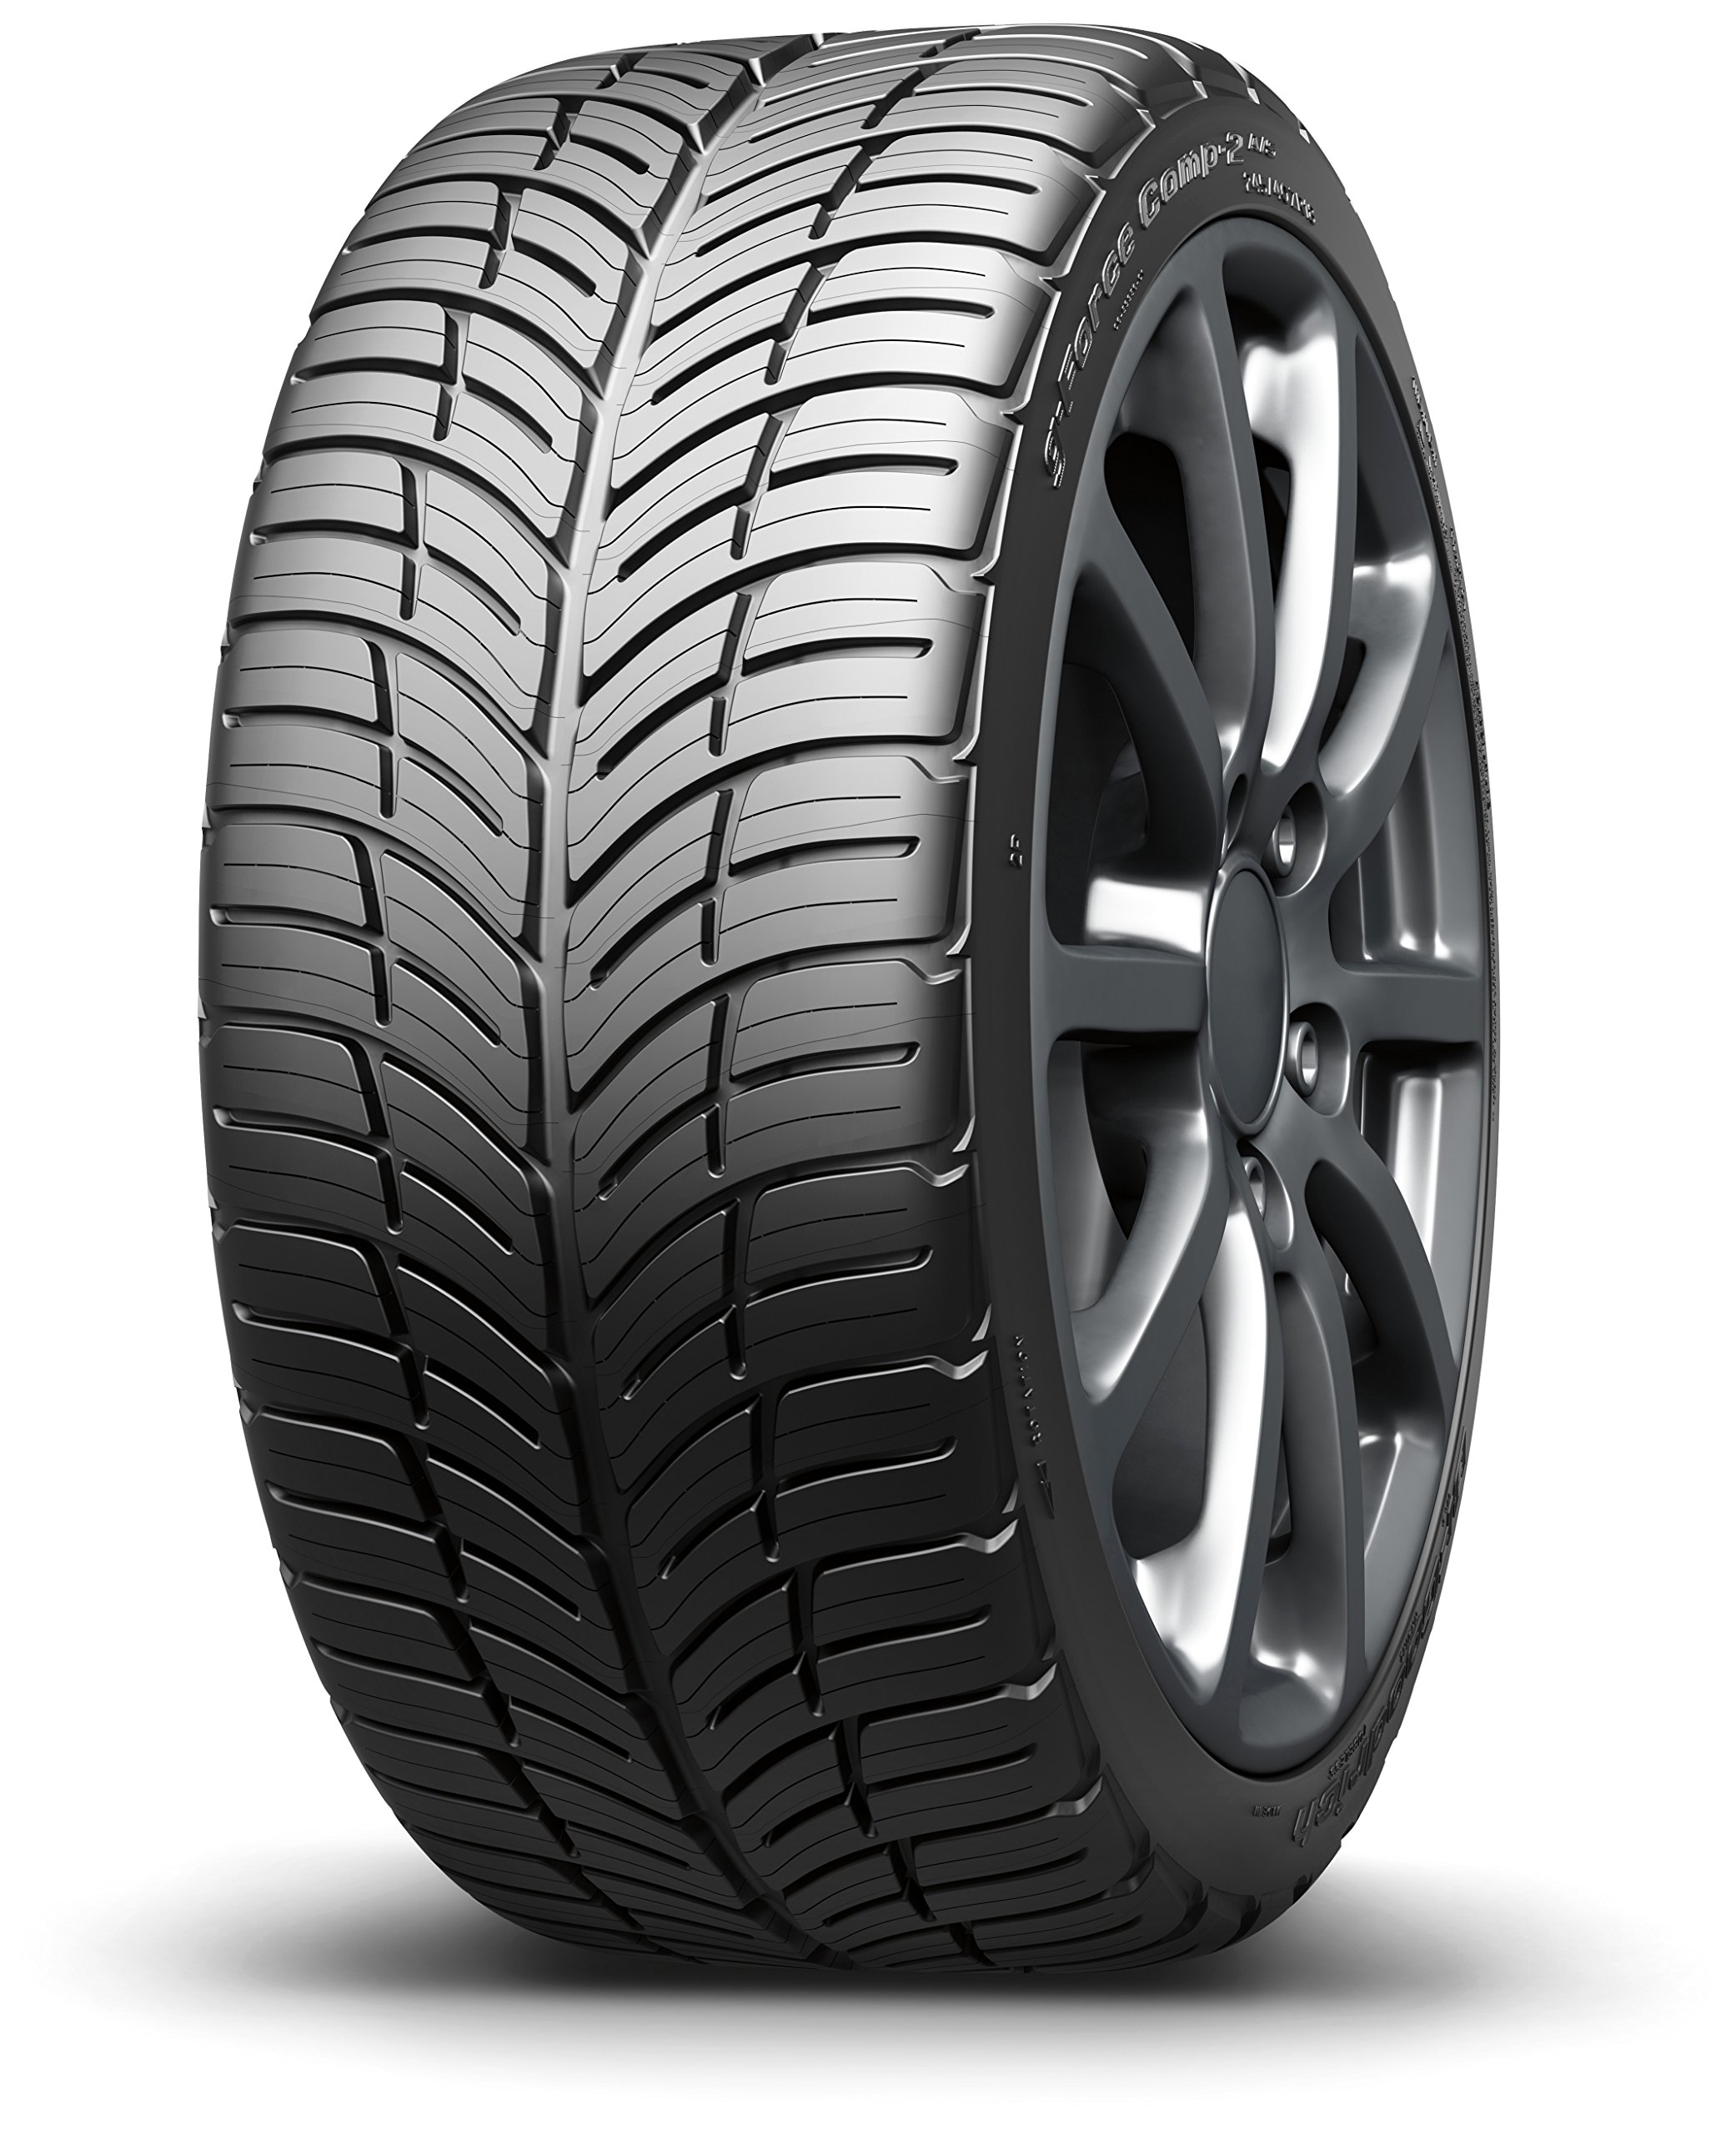 BFGoodrich BFG G-Force Comp-2 A/S Performance Radial Tire - 285/035R20 100Y